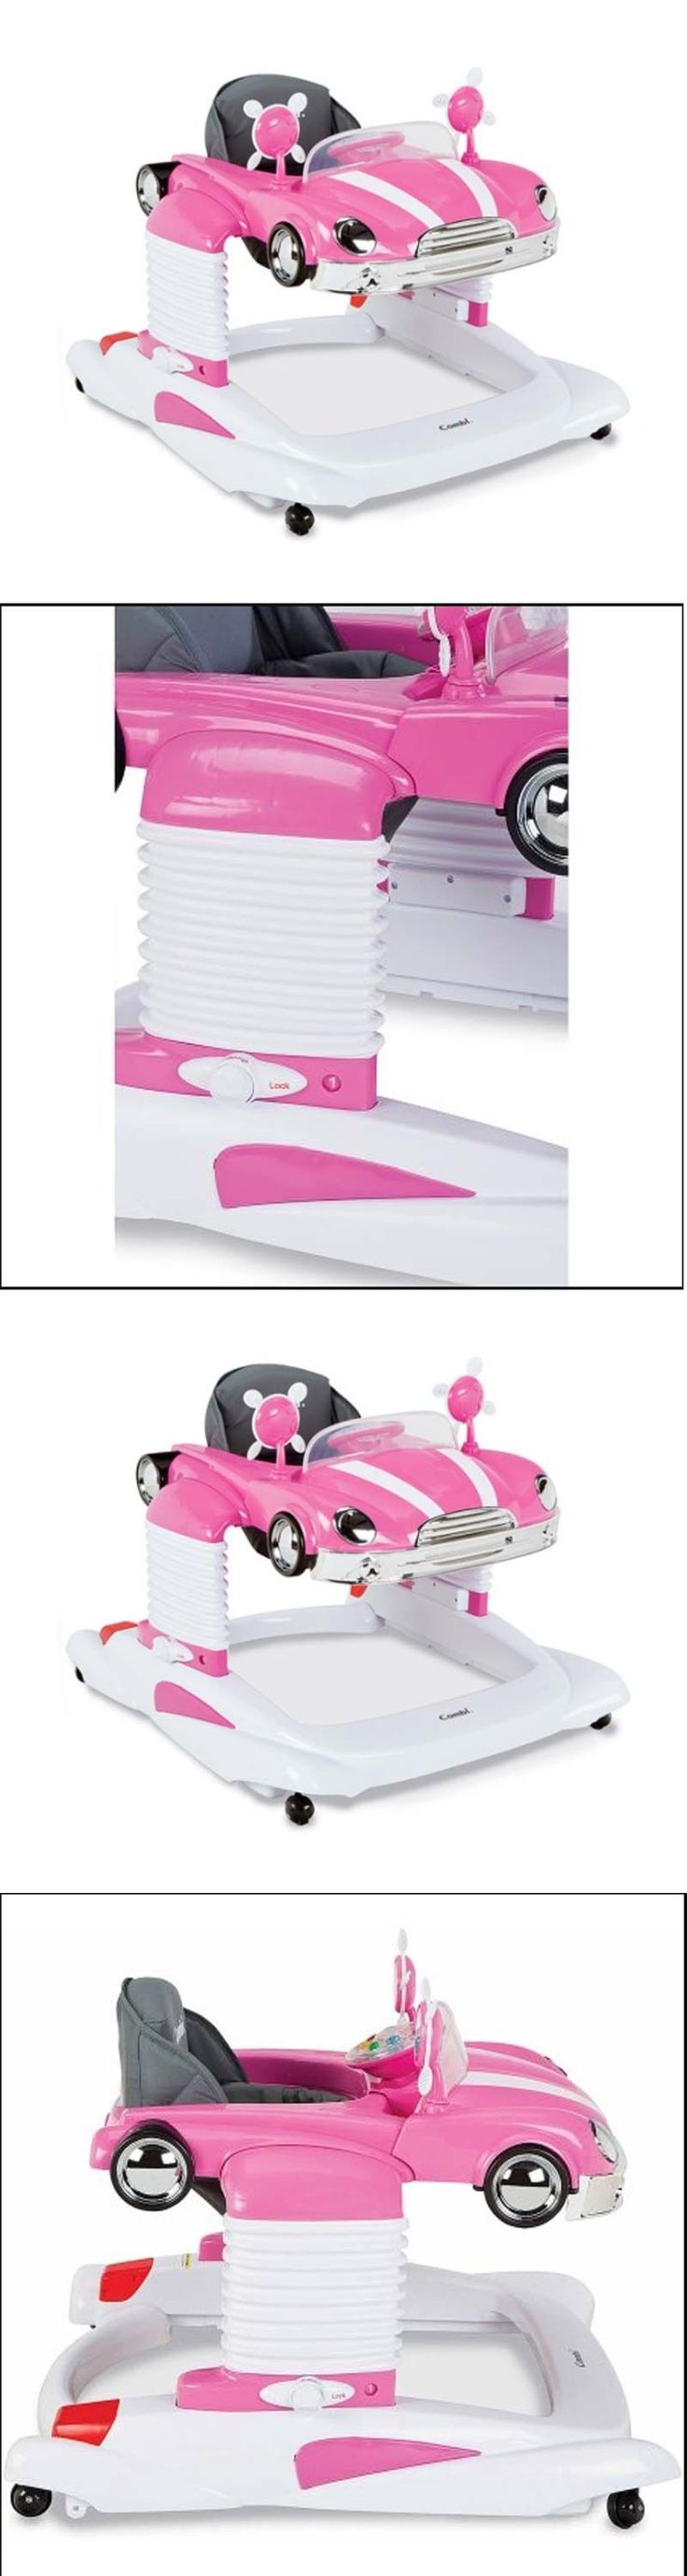 Baby Co-Sleepers 121152: Mobile Walker For Baby Pink Entertainer Toddler Practice Walk Stand Position -> BUY IT NOW ONLY: $150.62 on eBay!